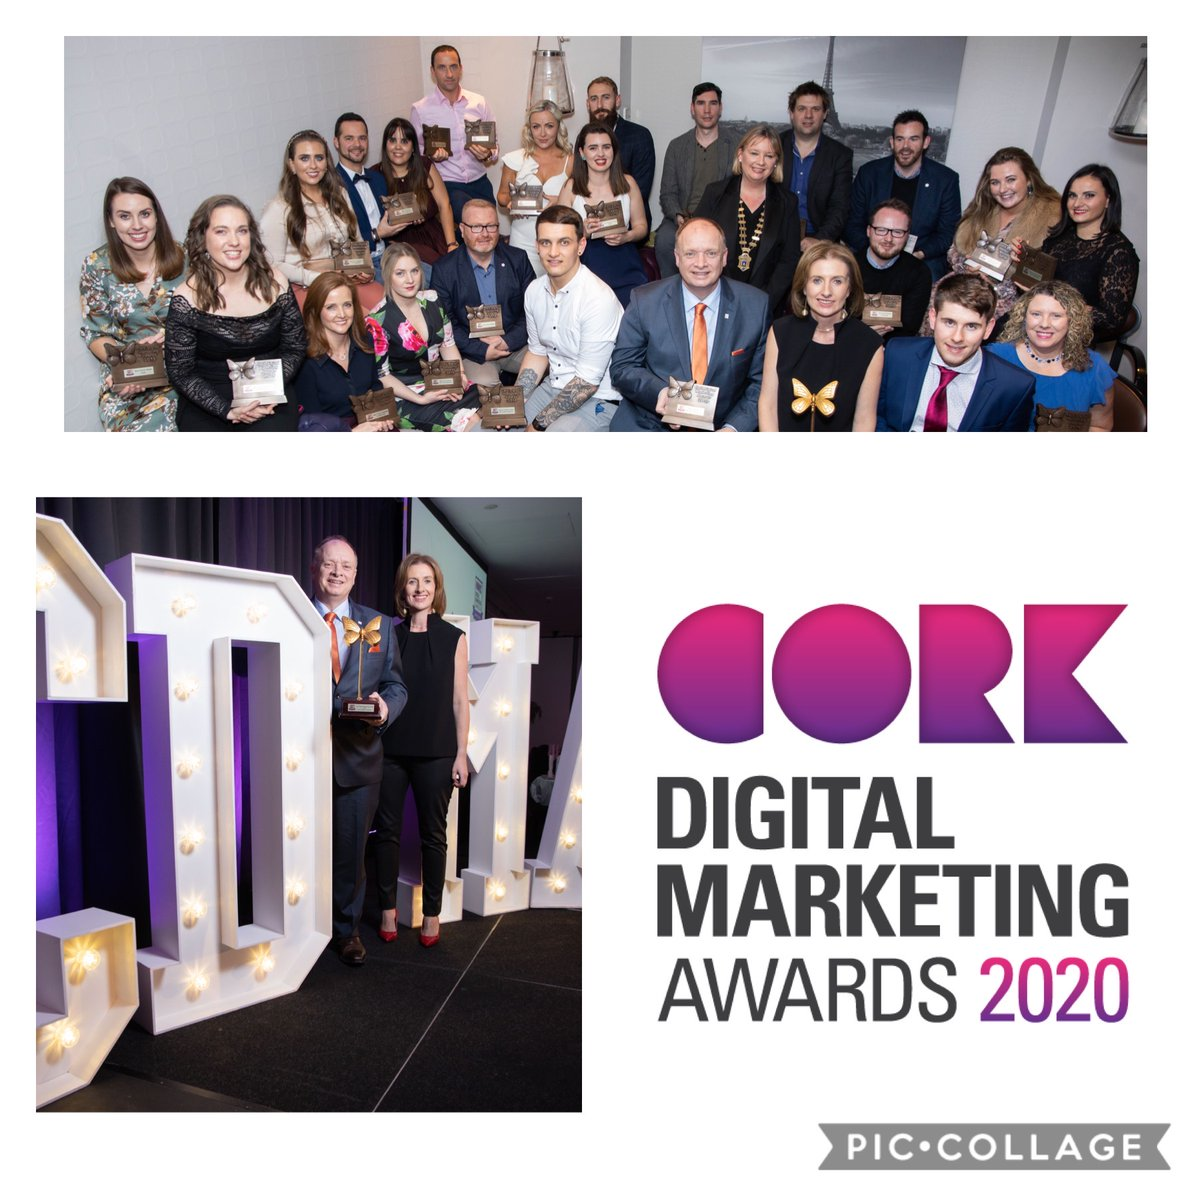 Entries for this year's Cork Digital Marketing Awards are now open! The theme for this year's CDMAs is Digital Titans. Why not show how your persistent and innovative hard work in the digital marketing sphere made an impact. #DigitalCork20 More dets: https://t.co/dsvybLi0YH https://t.co/HZel79QWdO